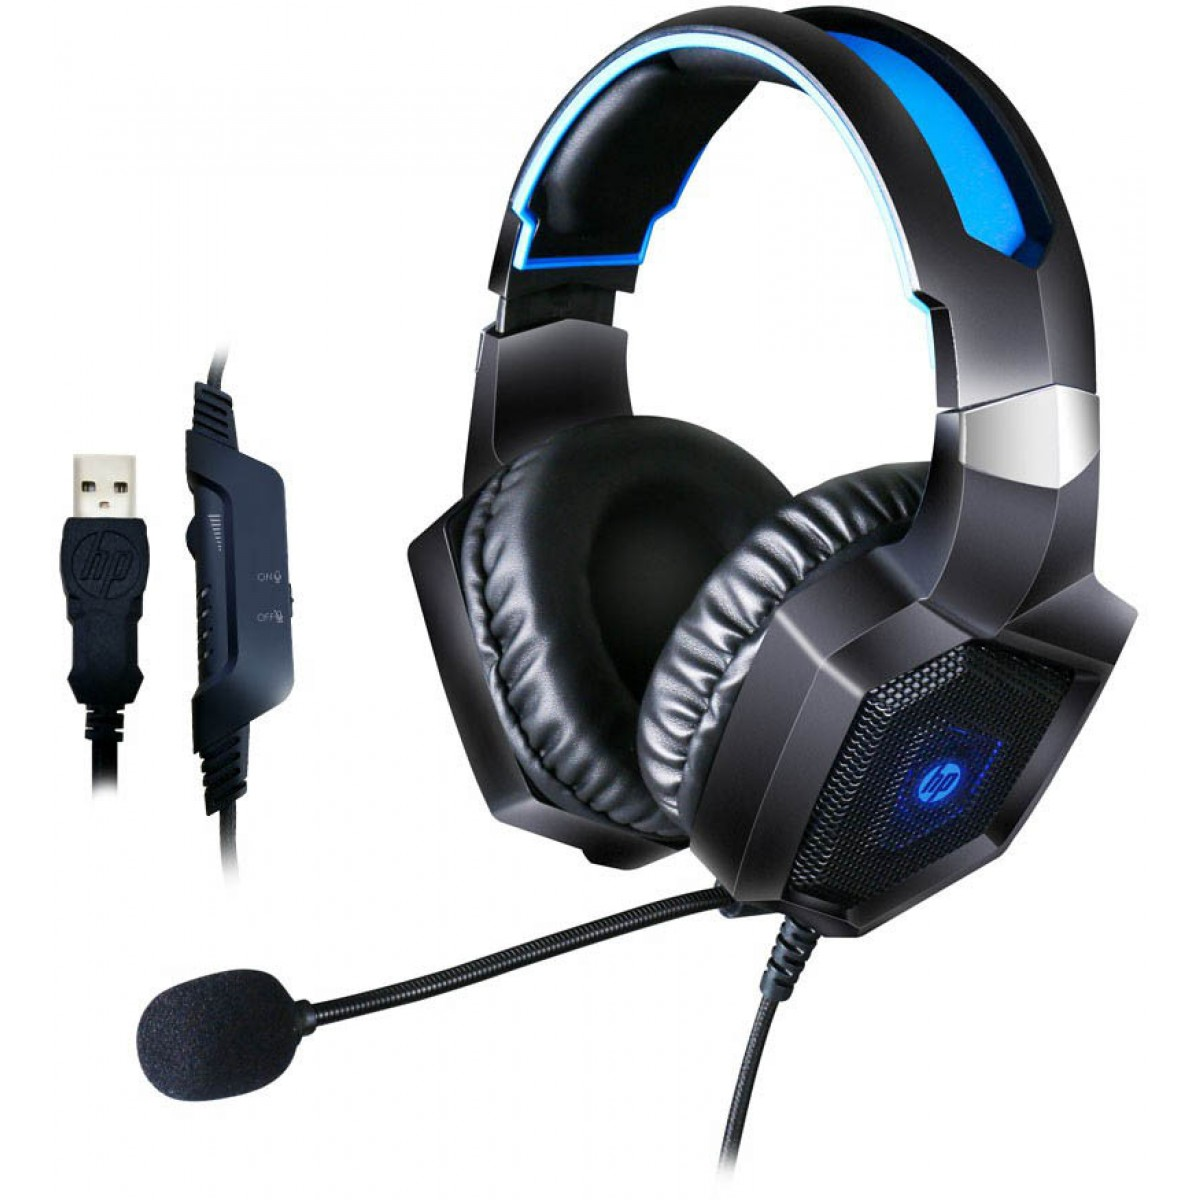 Headset Gamer HP H320GS, Surround 7.1, Led Blue